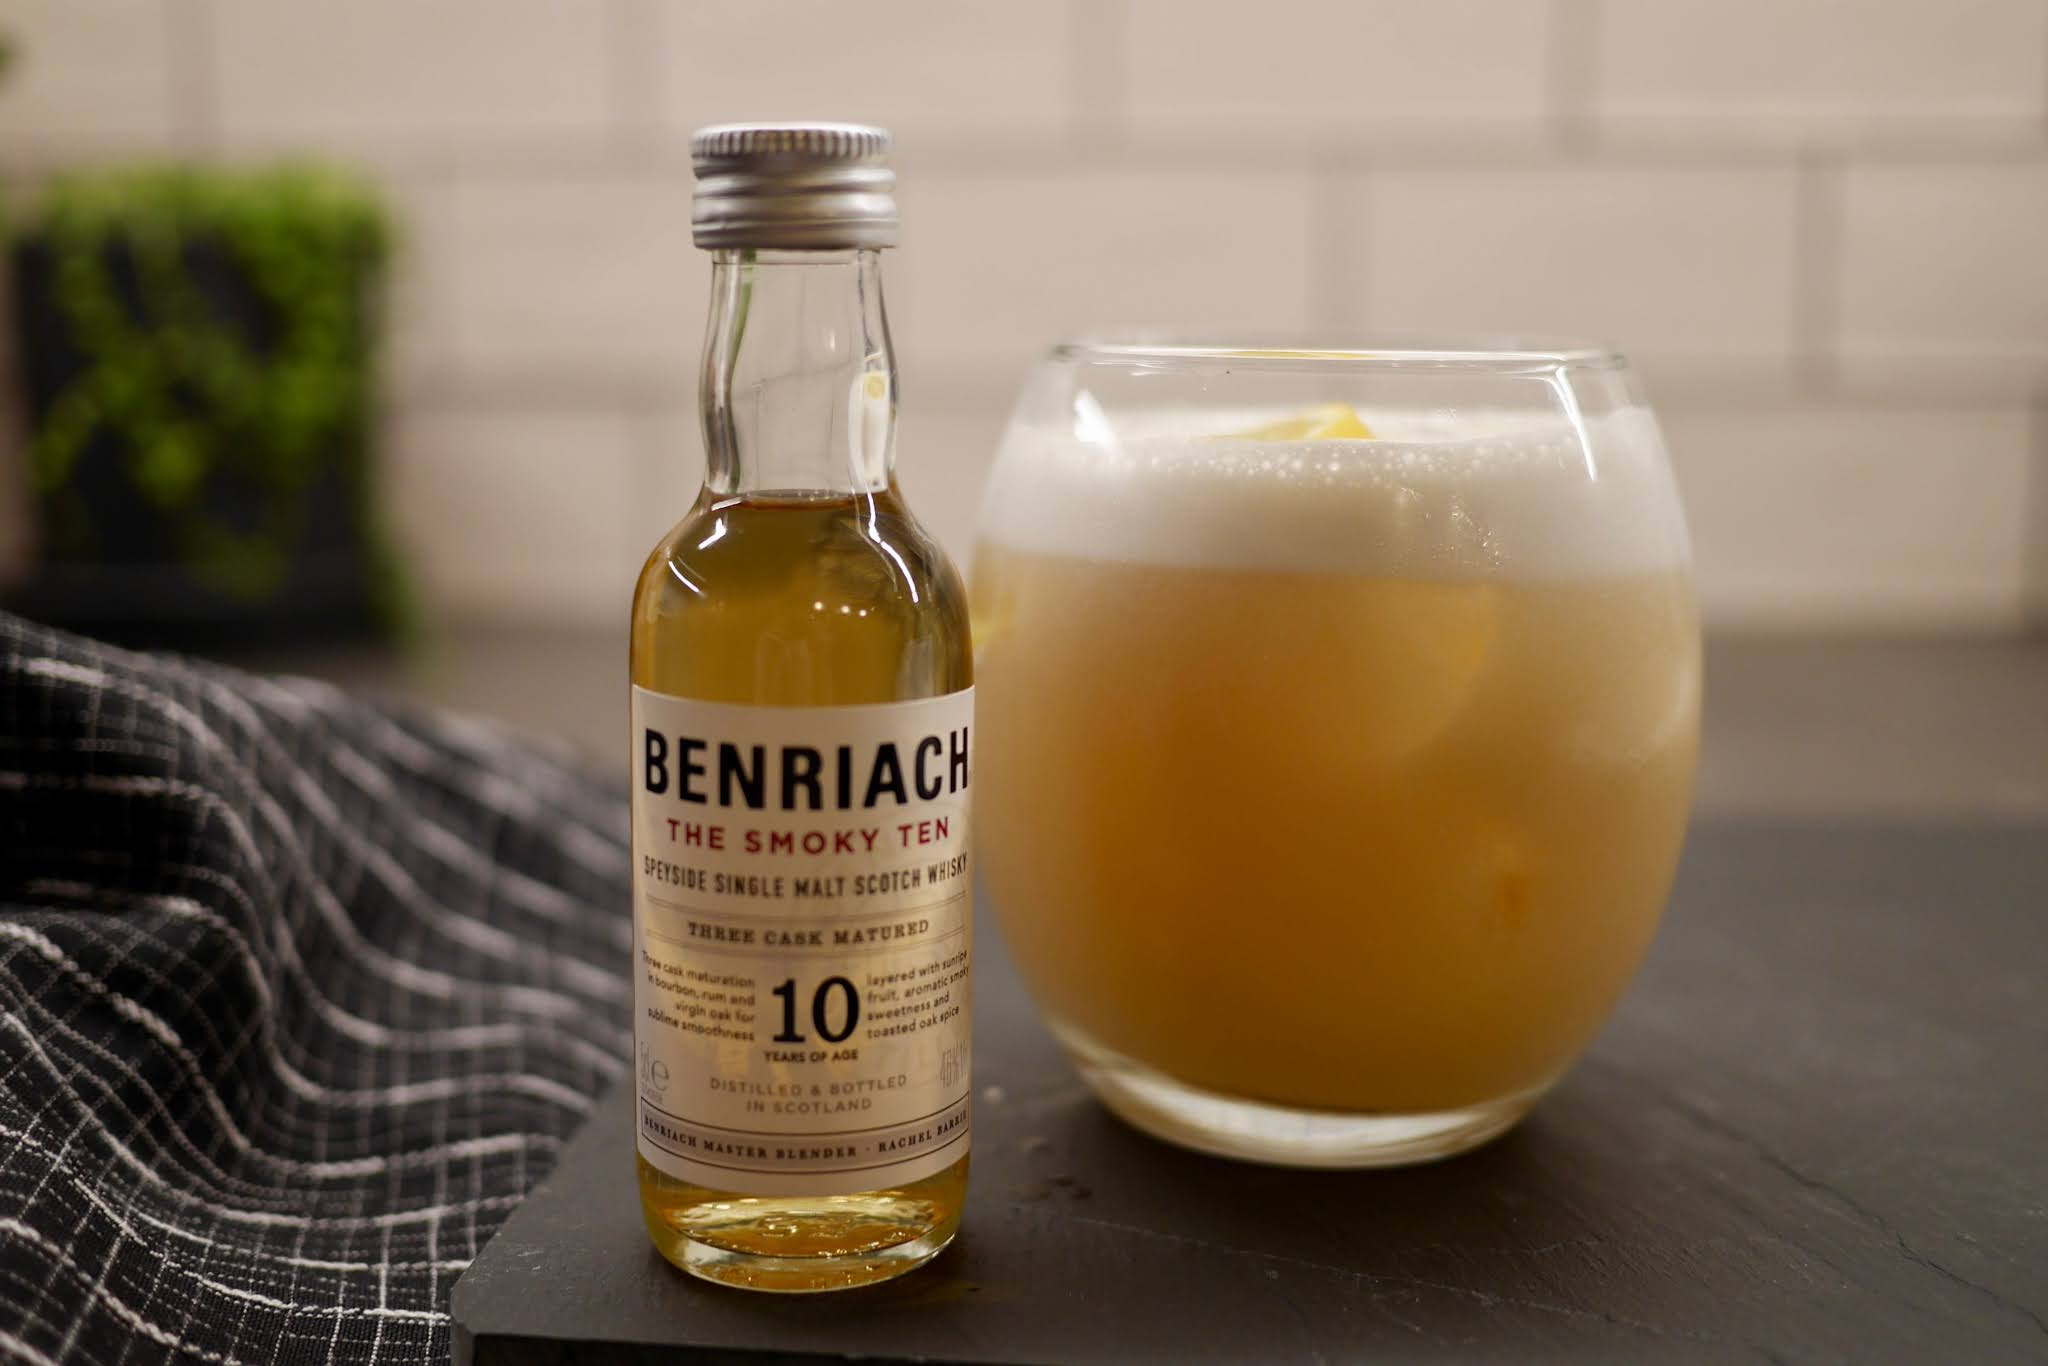 benRiach whisky sour cocktails, by calmctravels 1